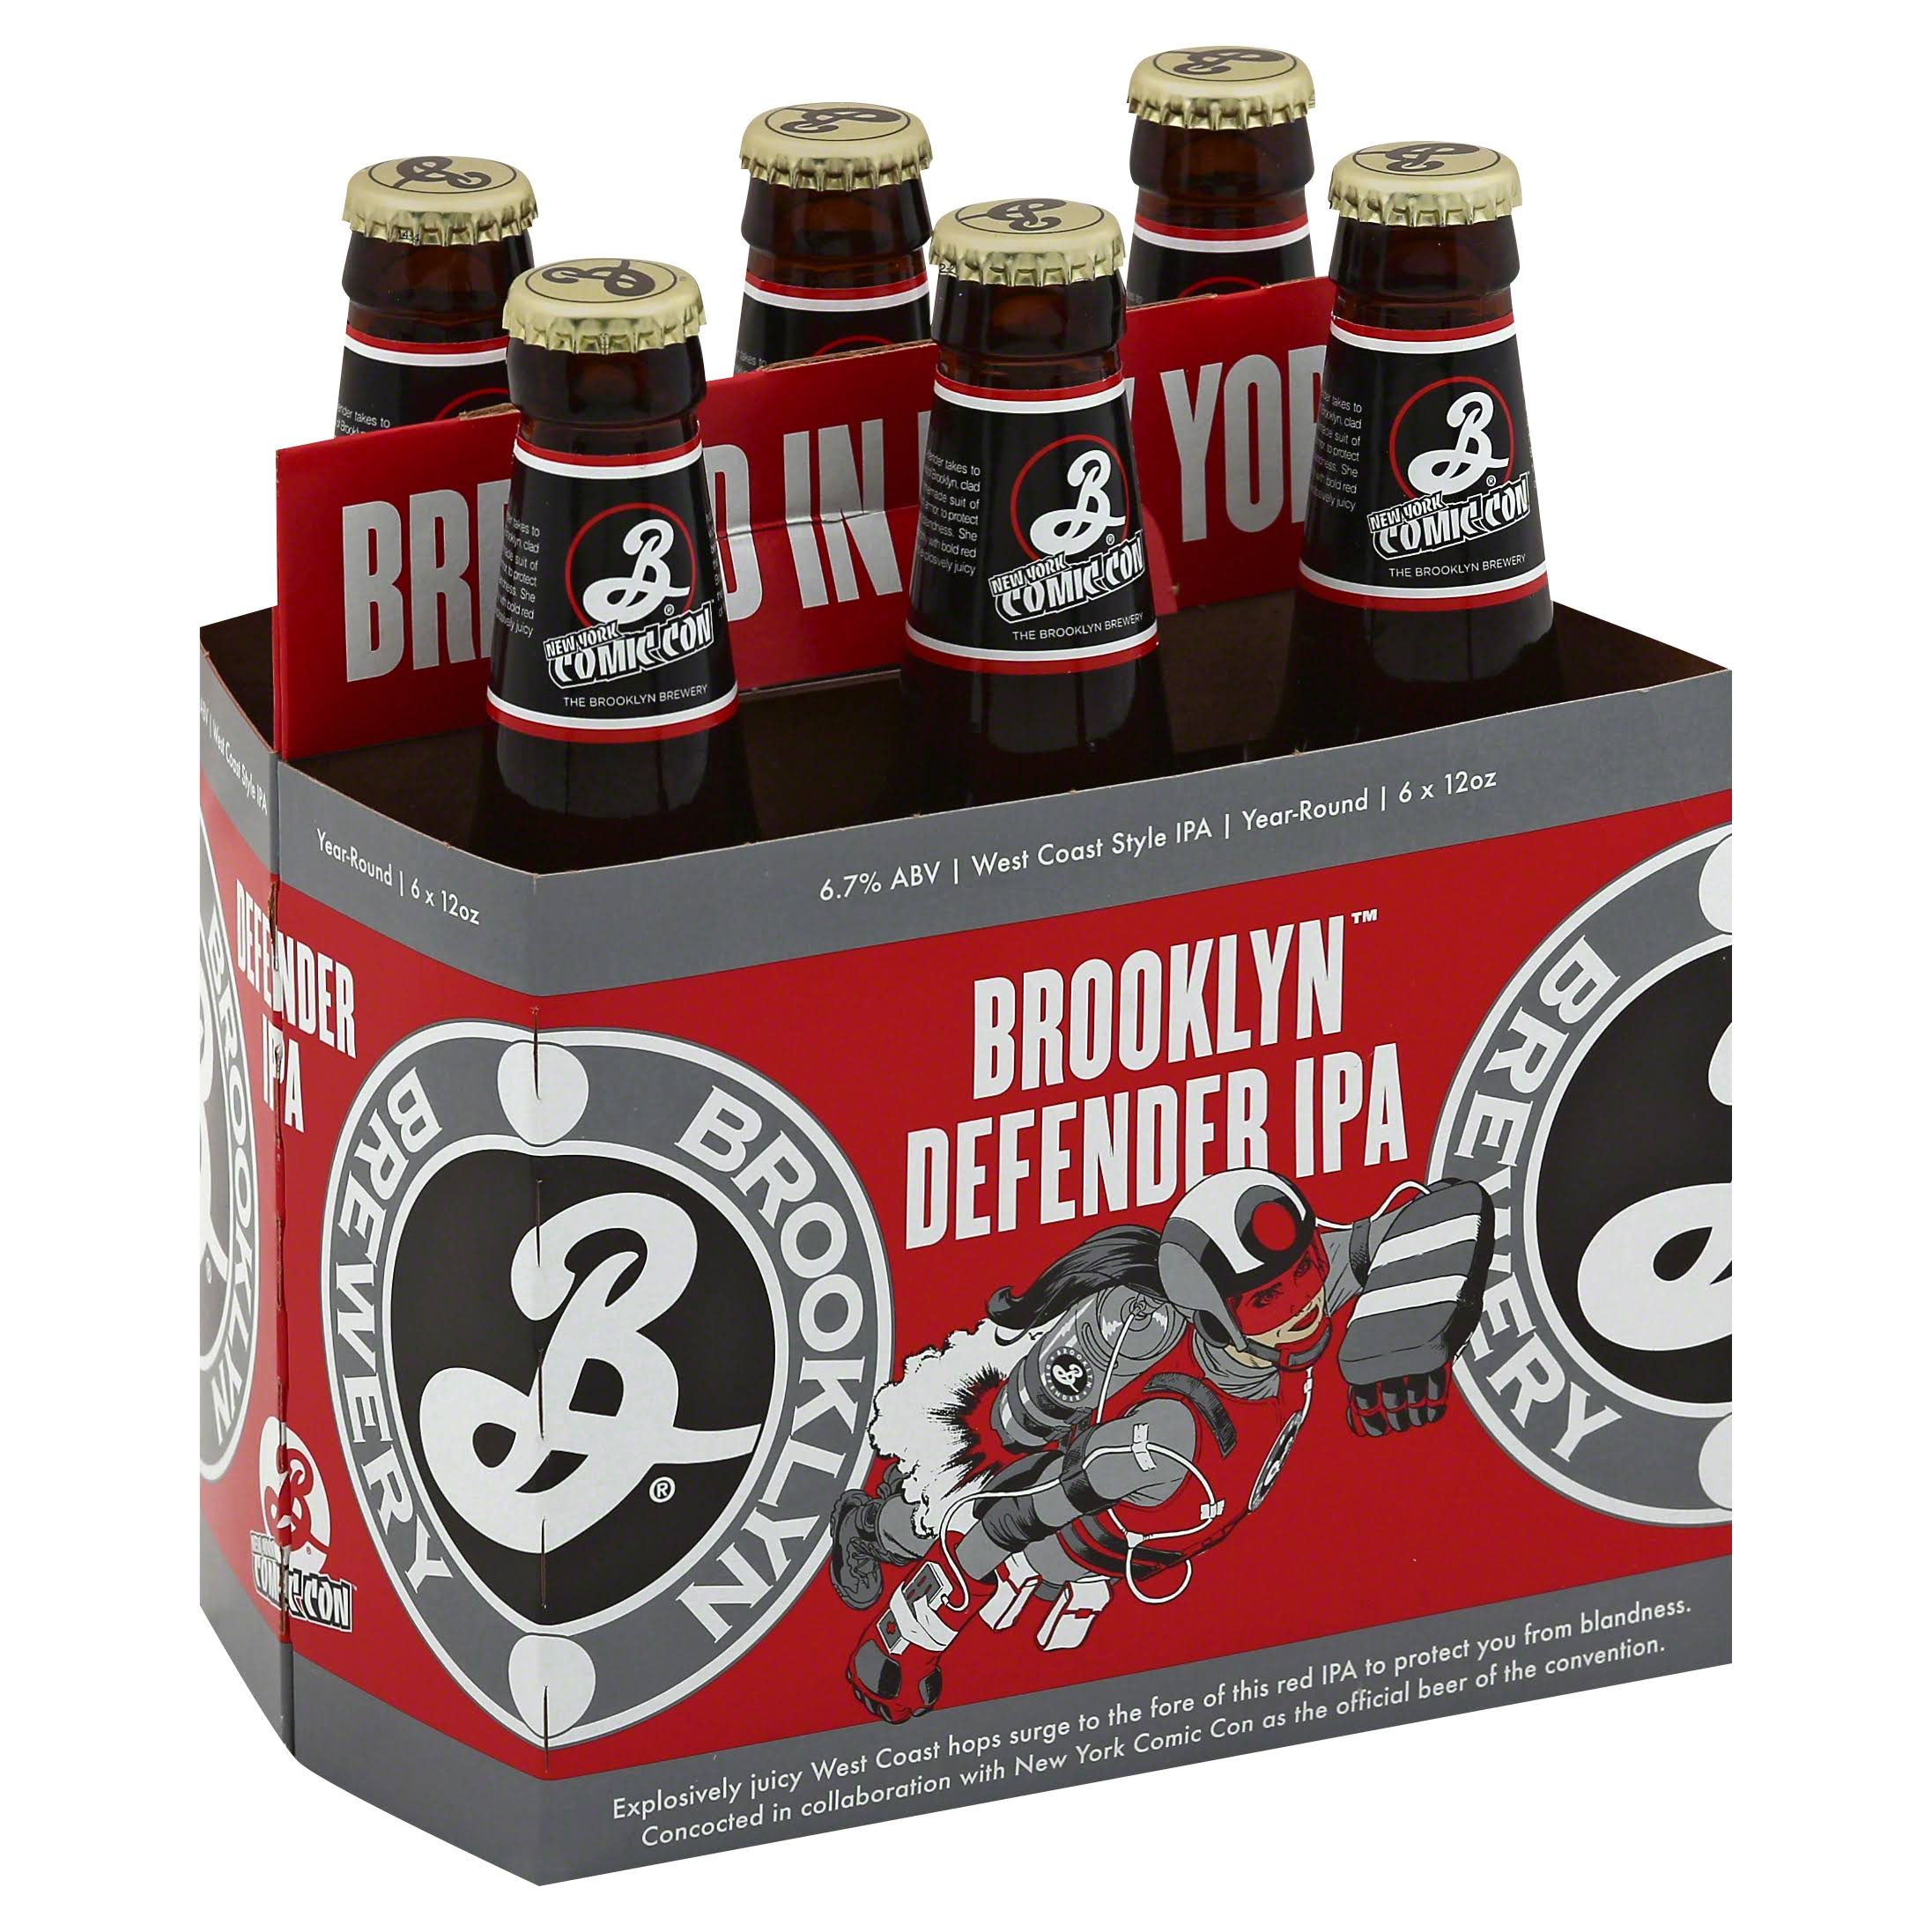 Brooklyn Defender IPA - 6 pack, 12 fl oz bottles